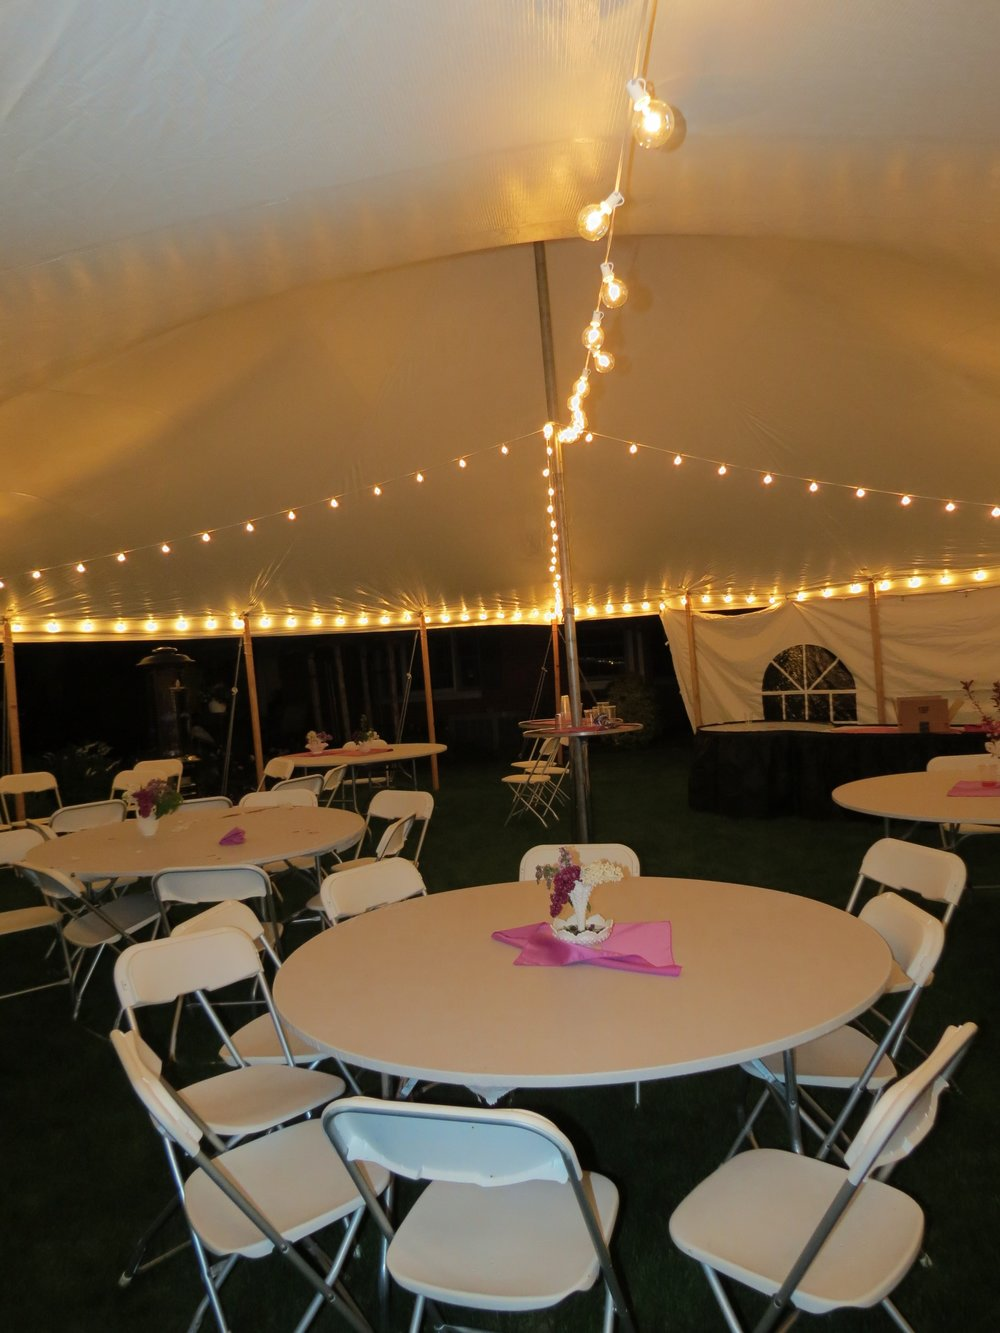 Tent cafe lighting